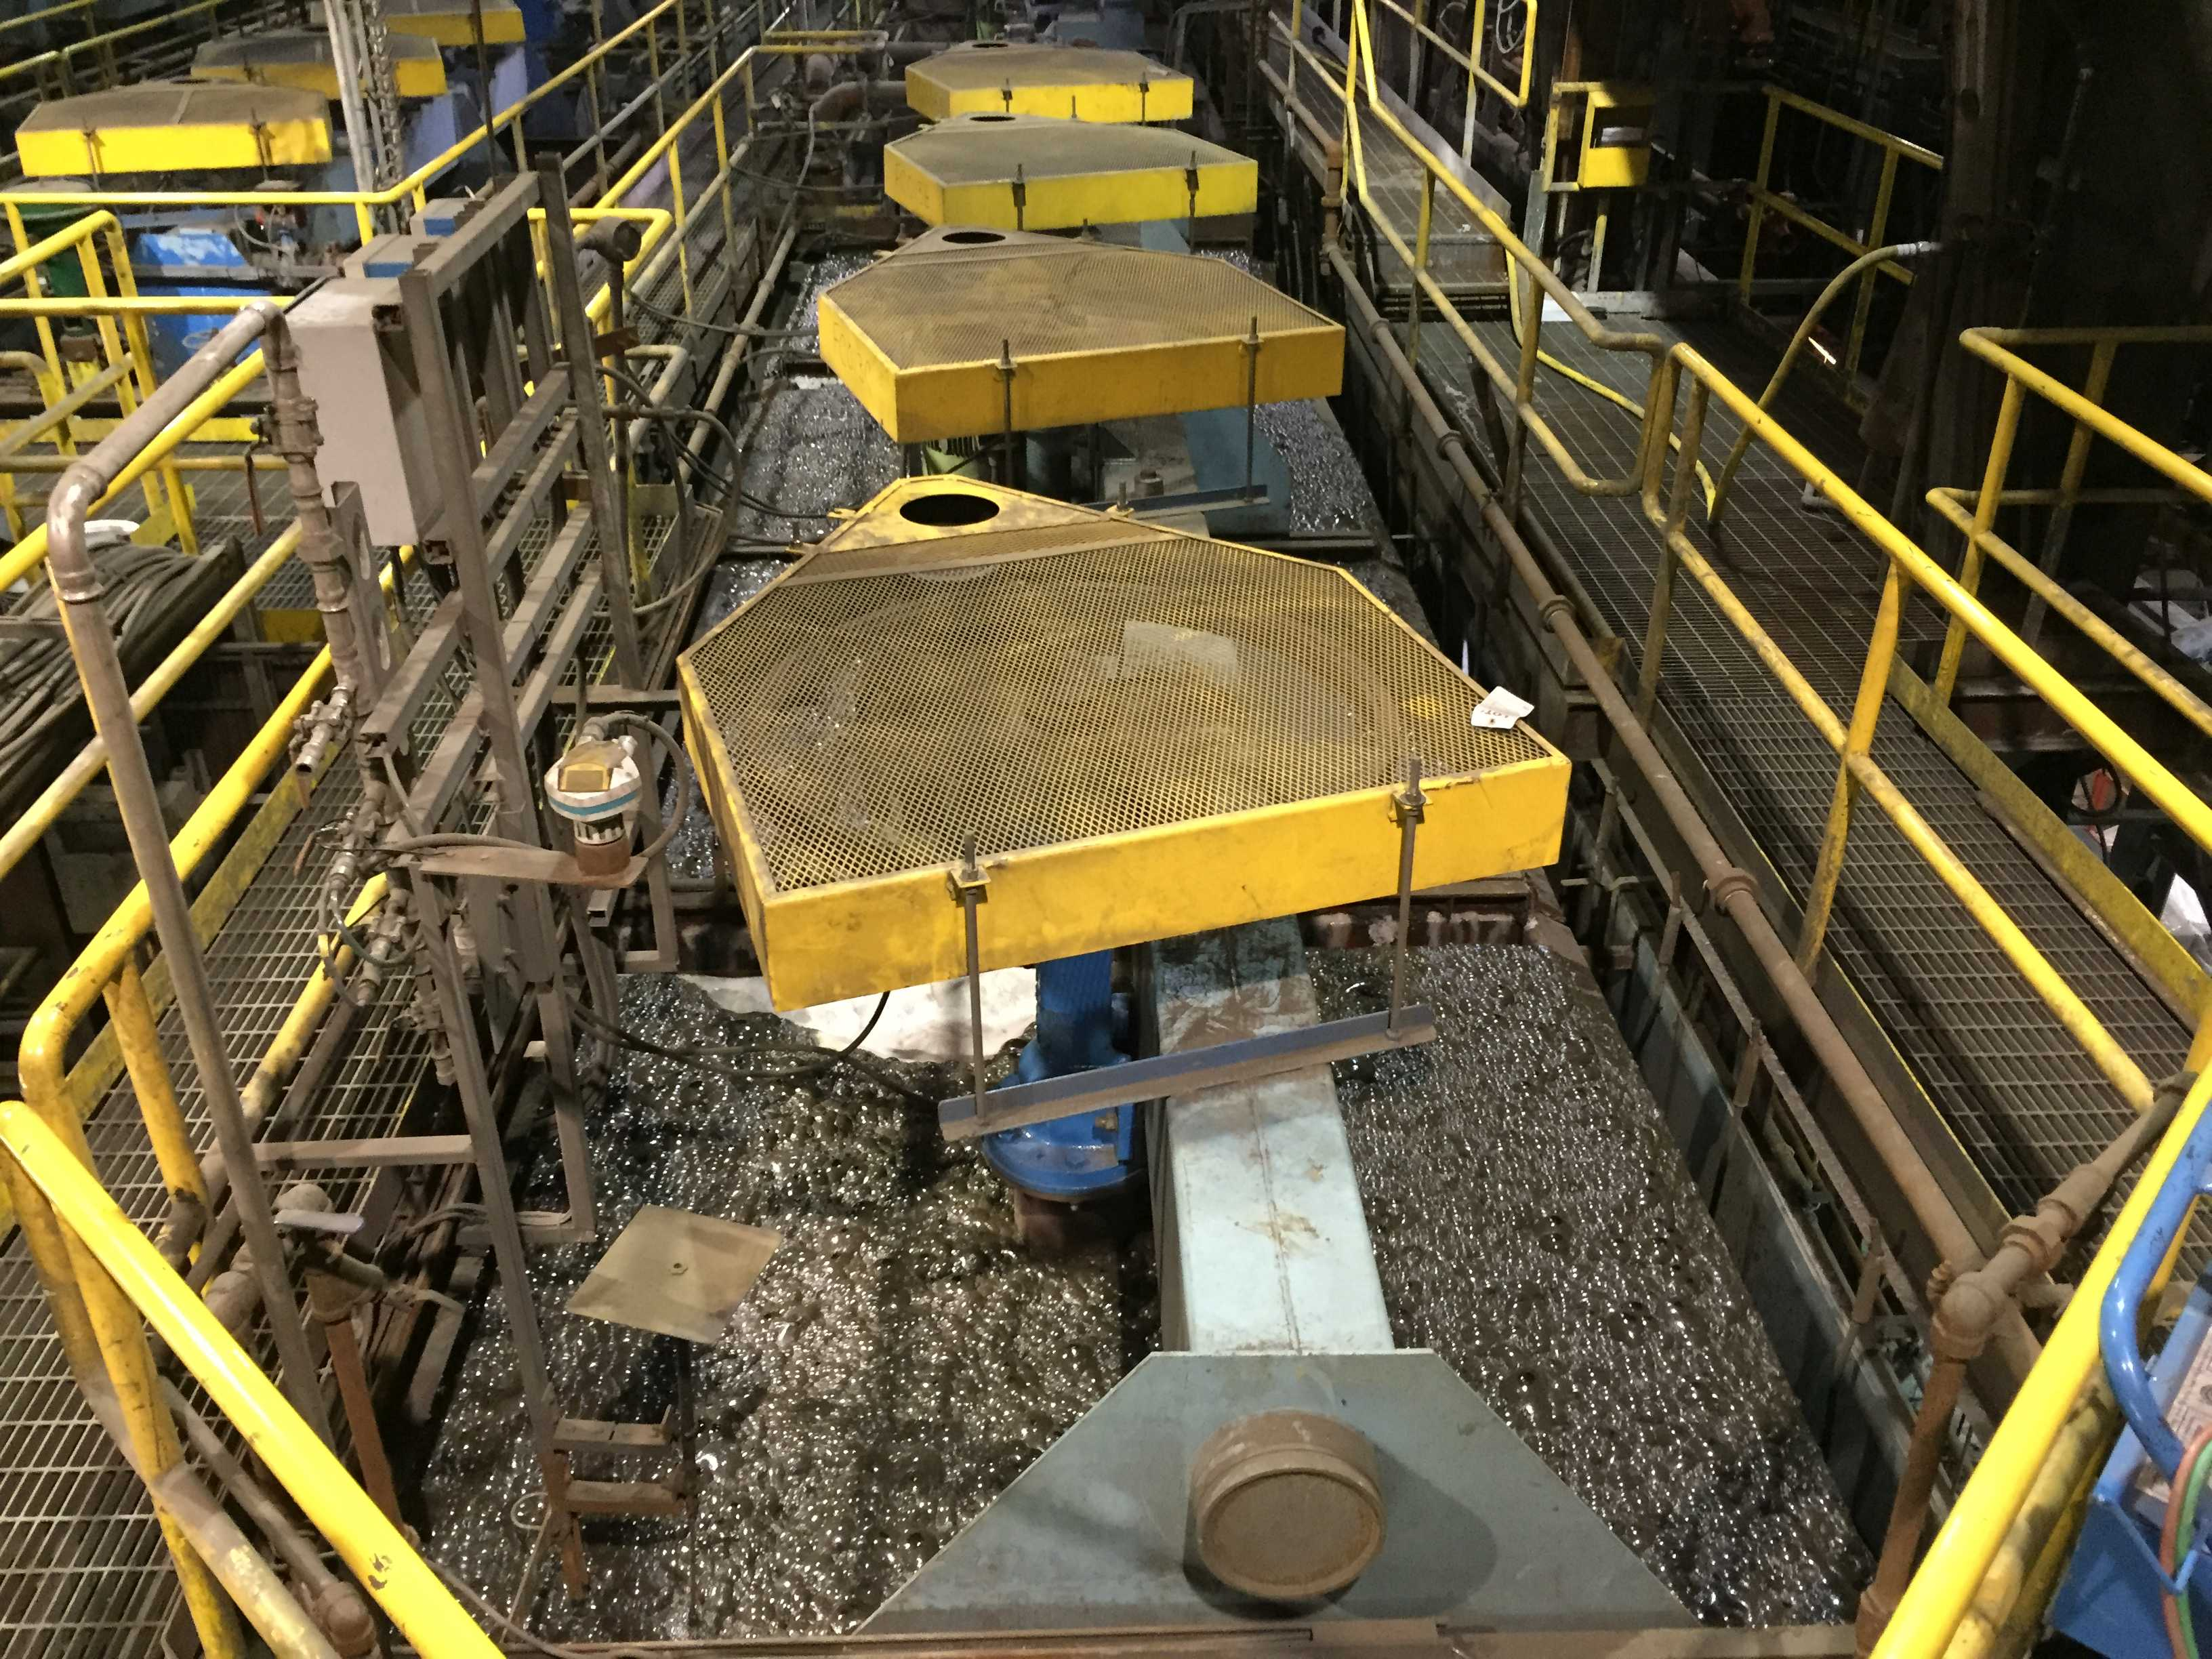 A sulphide flotation recovery cell at Trevali Mining's Caribou zinc mine in northern New Brunswick. Credit: Trevali Mining.